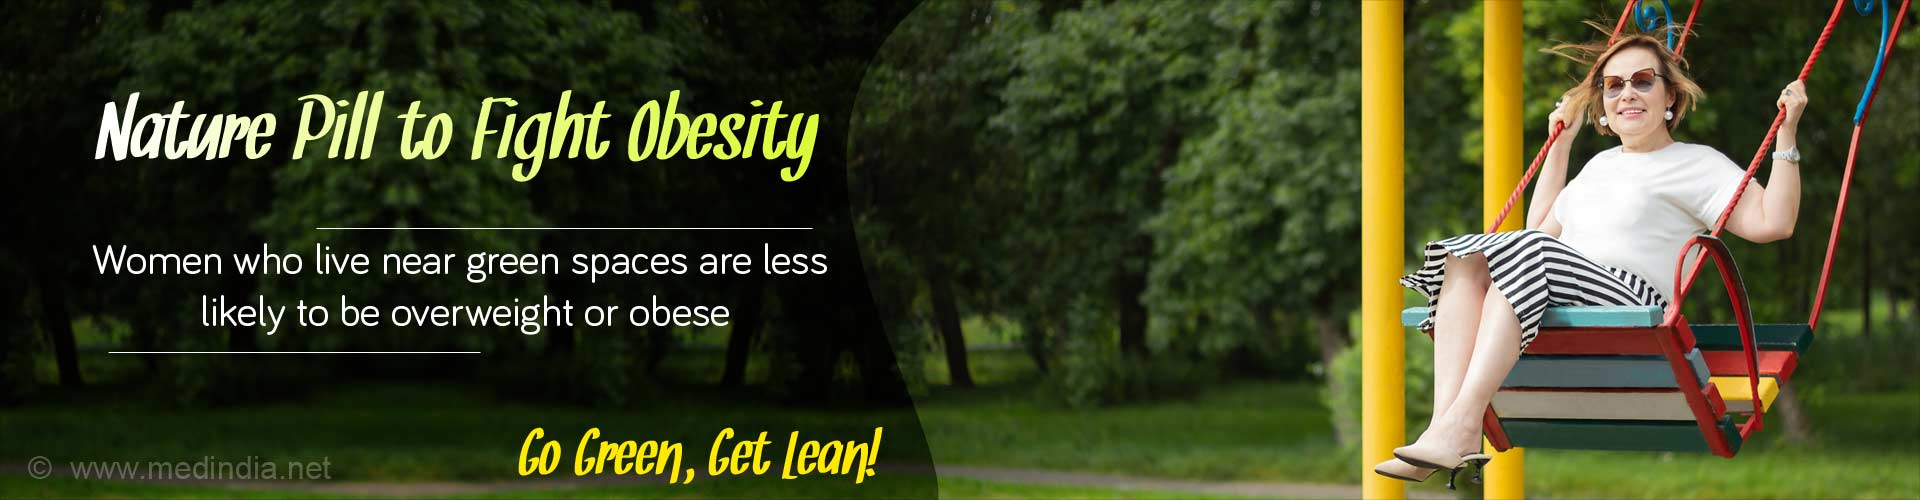 Nature pill to fight obesity. Women who live near green space are less likely to be overweight or obese. Go green, get lean!